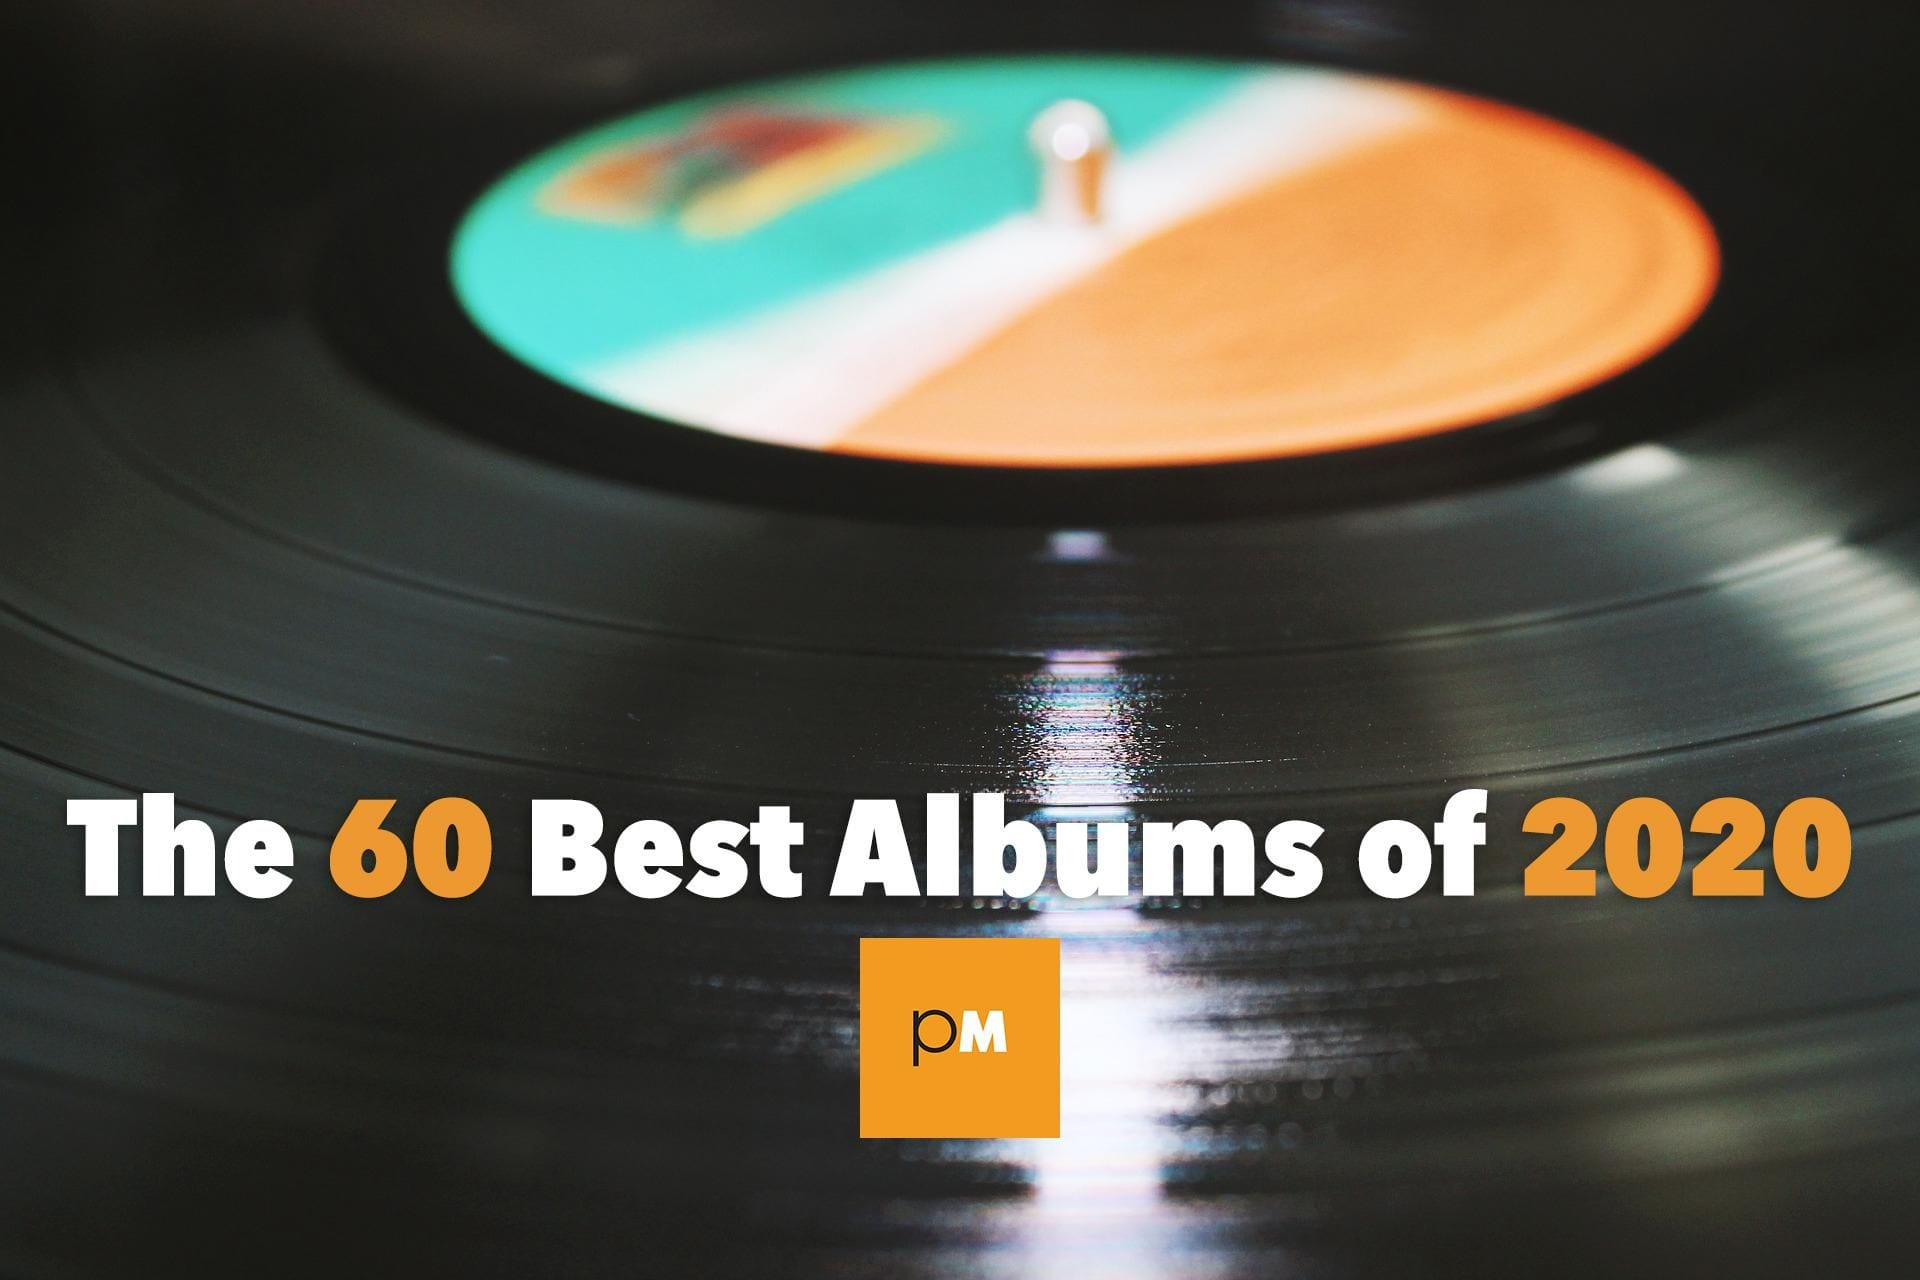 The 60 Best Albums of 2020